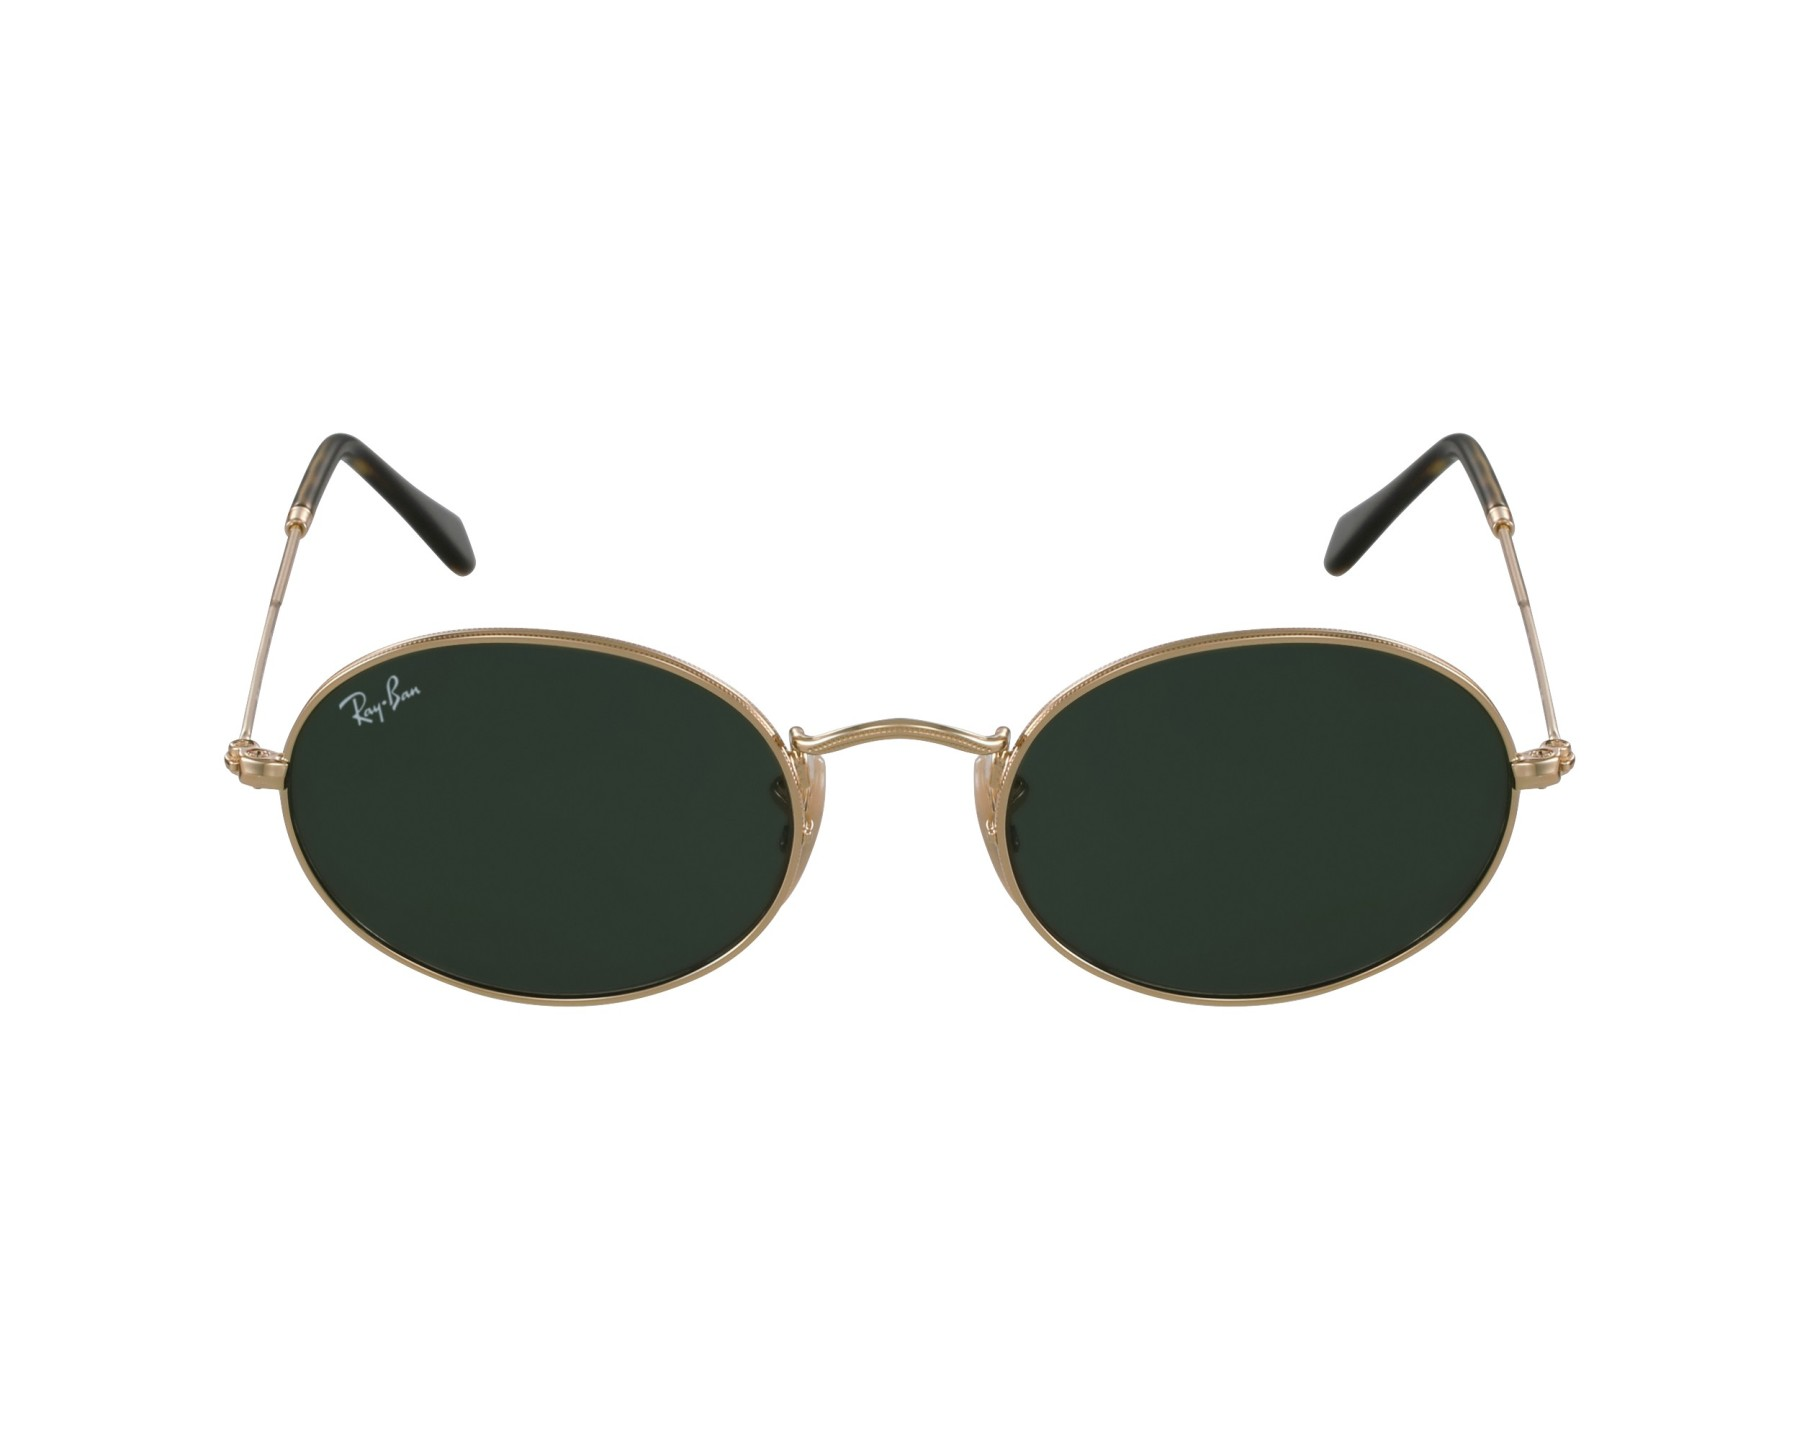 a191c1000a7ec7 Sunglasses Ray-Ban RB-3547-N 001 48-21 Gold profile view